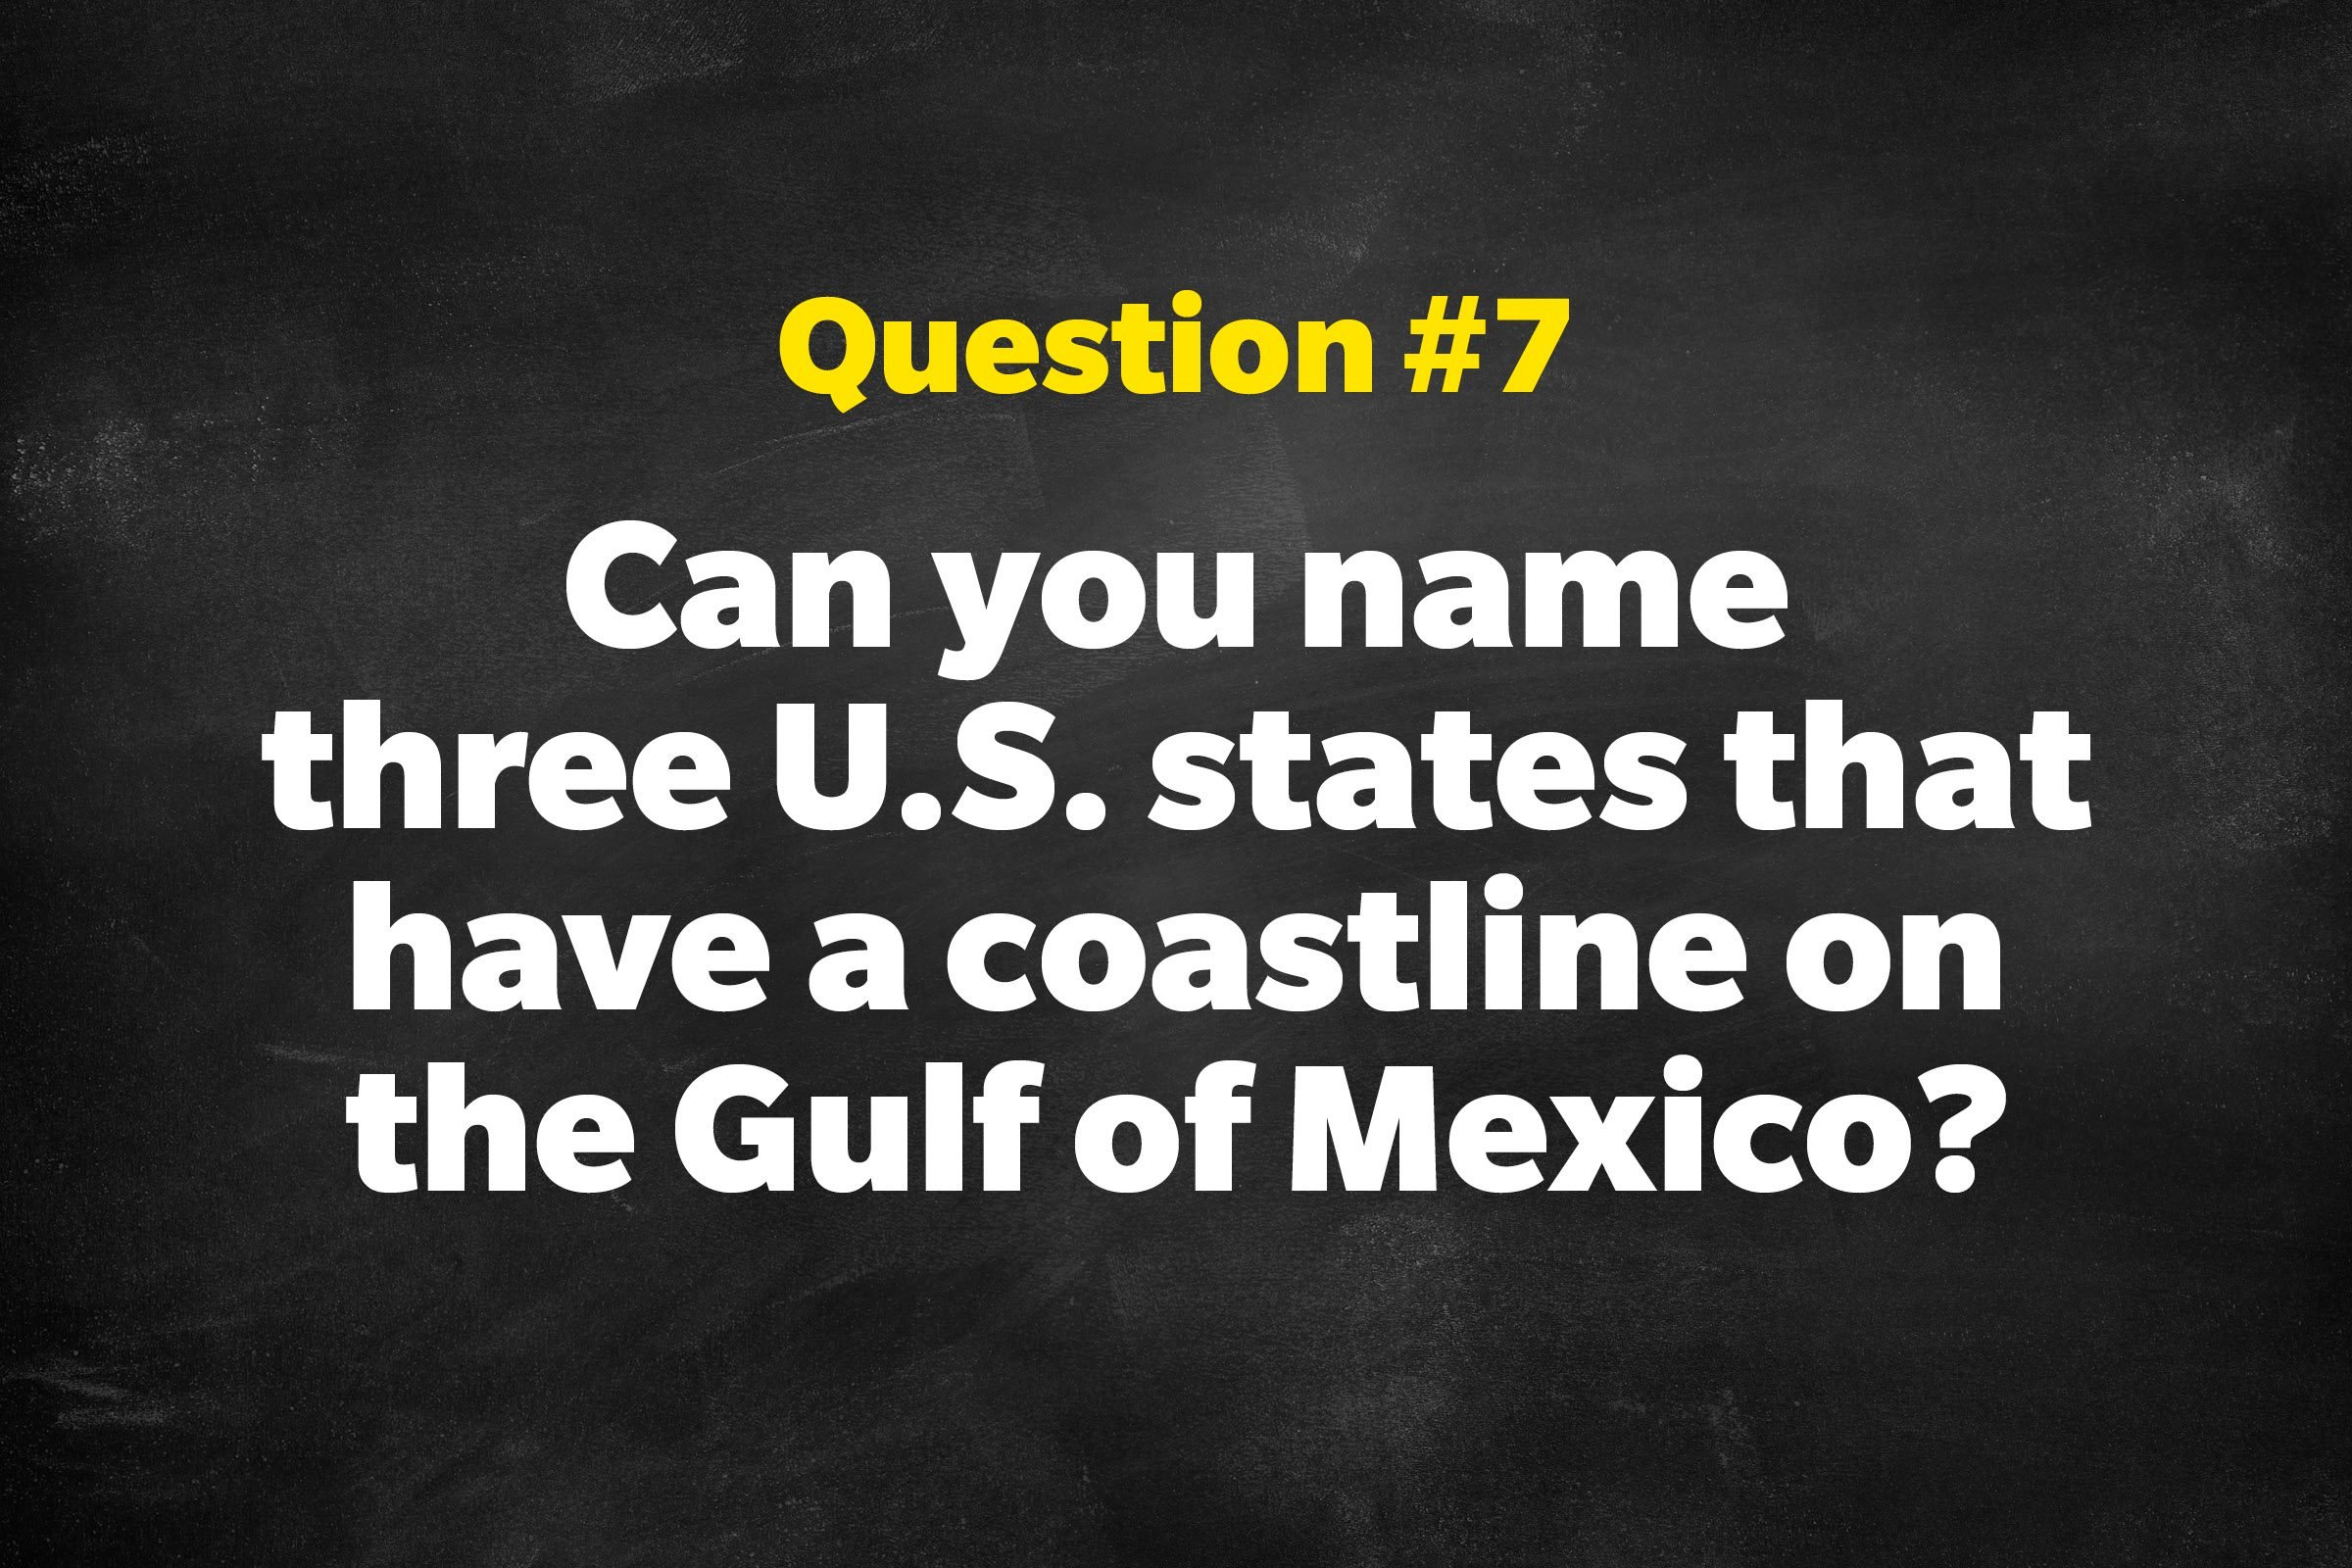 Question #7: Can you name three U.S. states that have a coastline on the Gulf of Mexico?